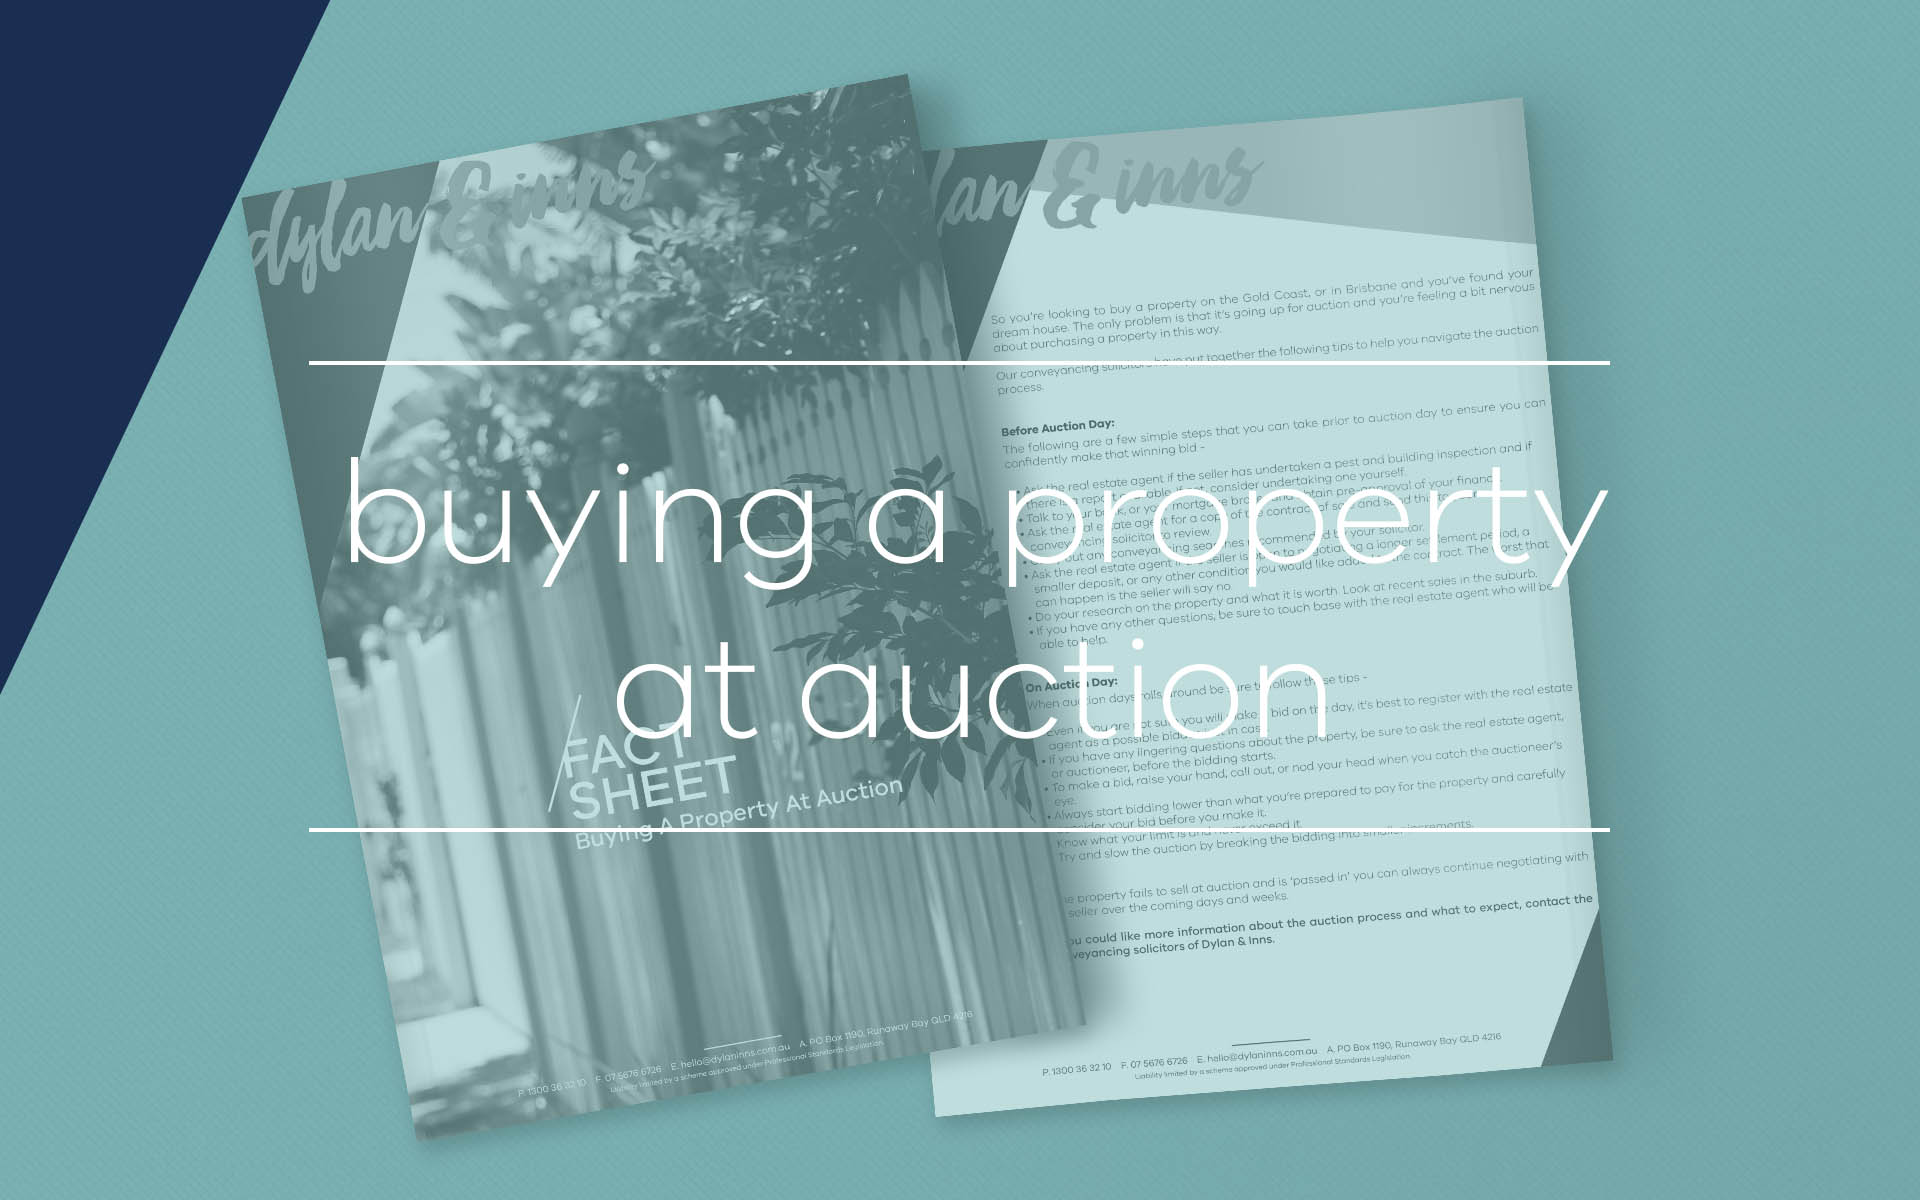 Our conveyancing solicitors have put together this fact sheet highlighting issues you need to be aware of when buying a property at auction.